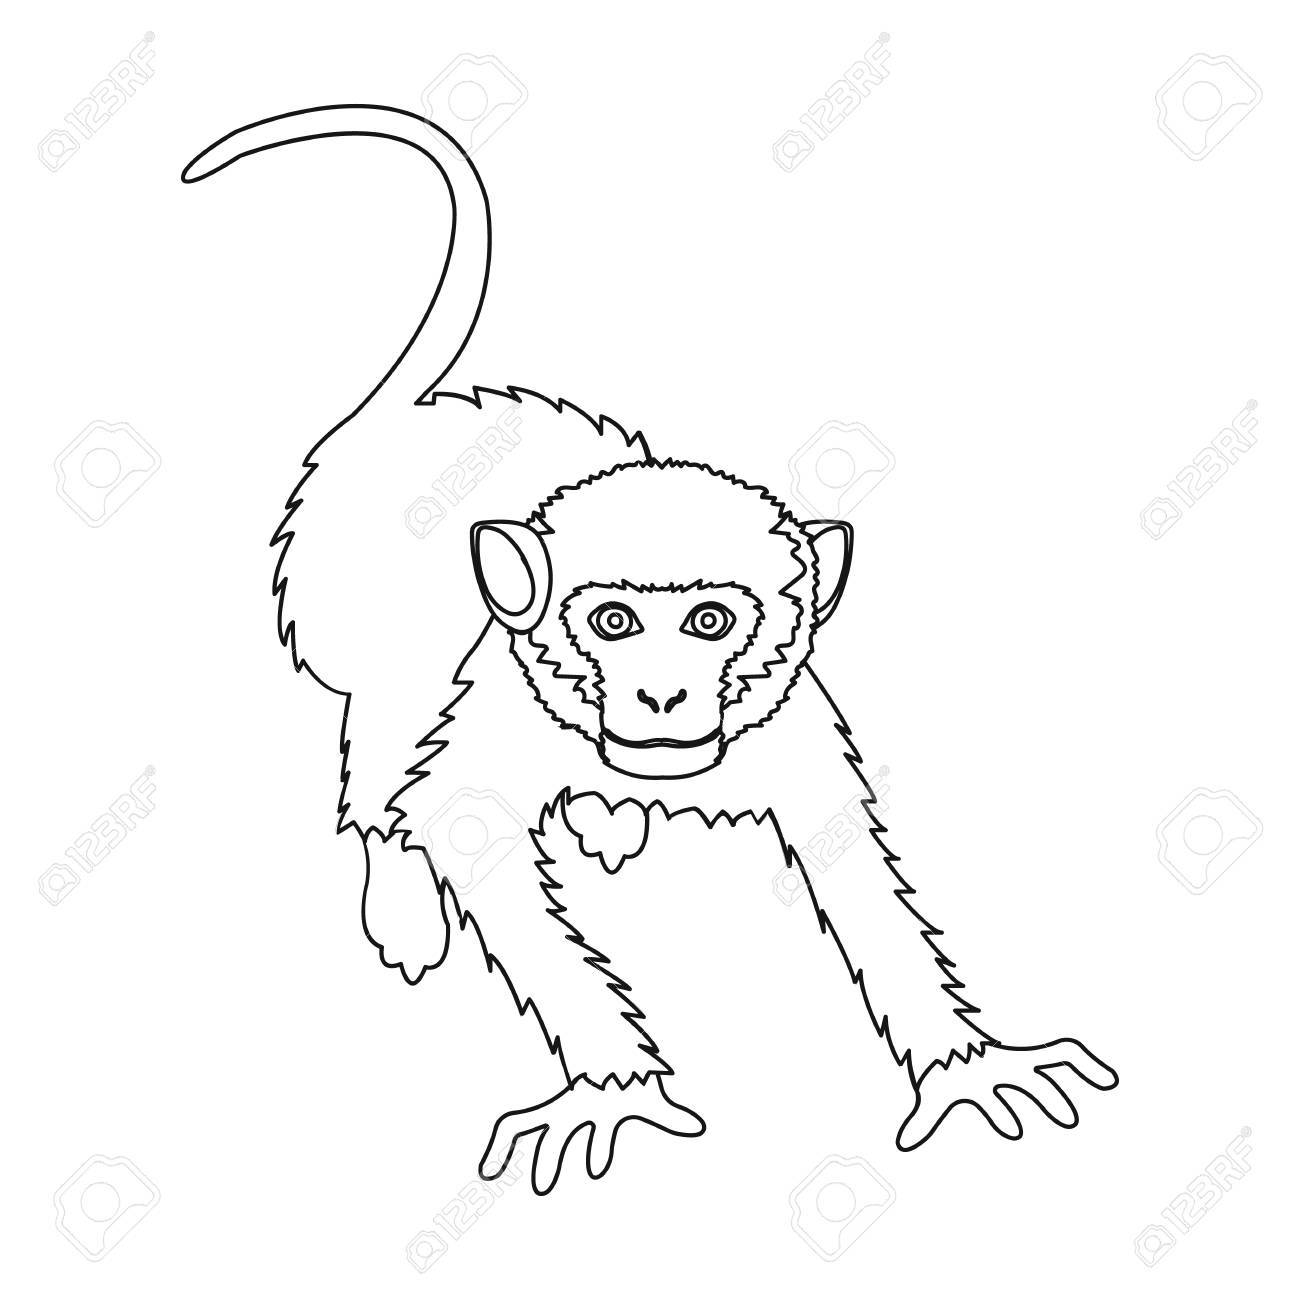 1300x1300 Monkey, Wild Animal Of The Jungle. Monkey, Mammal Primate Single